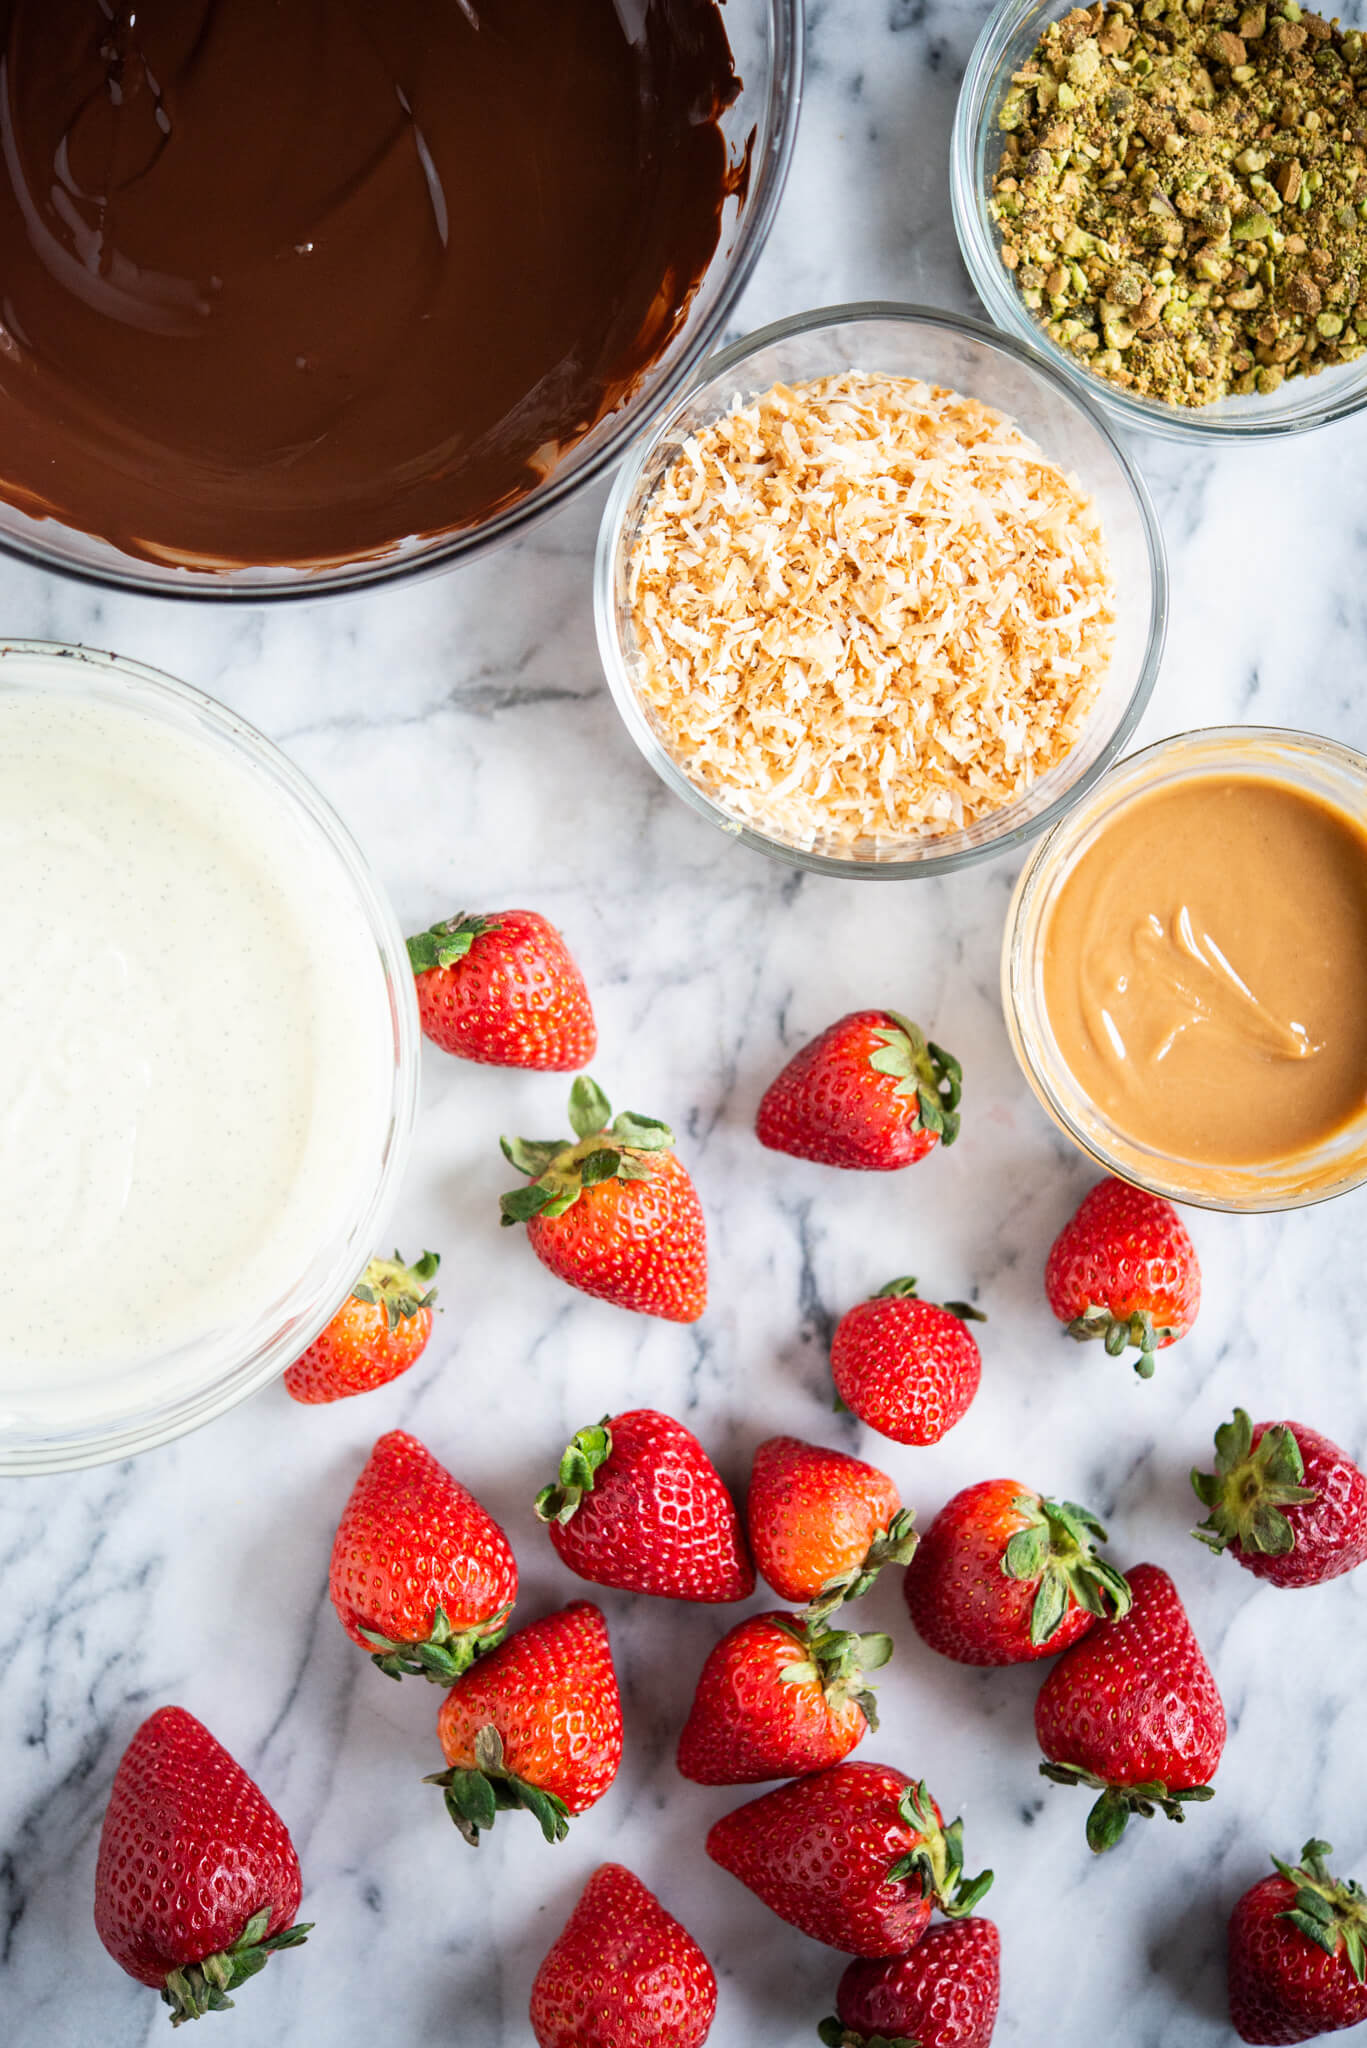 dark chocolate, white chocolate, pistachios, toasted coconut, and peanut butter in glass bowls next to strawberries on a marble surface